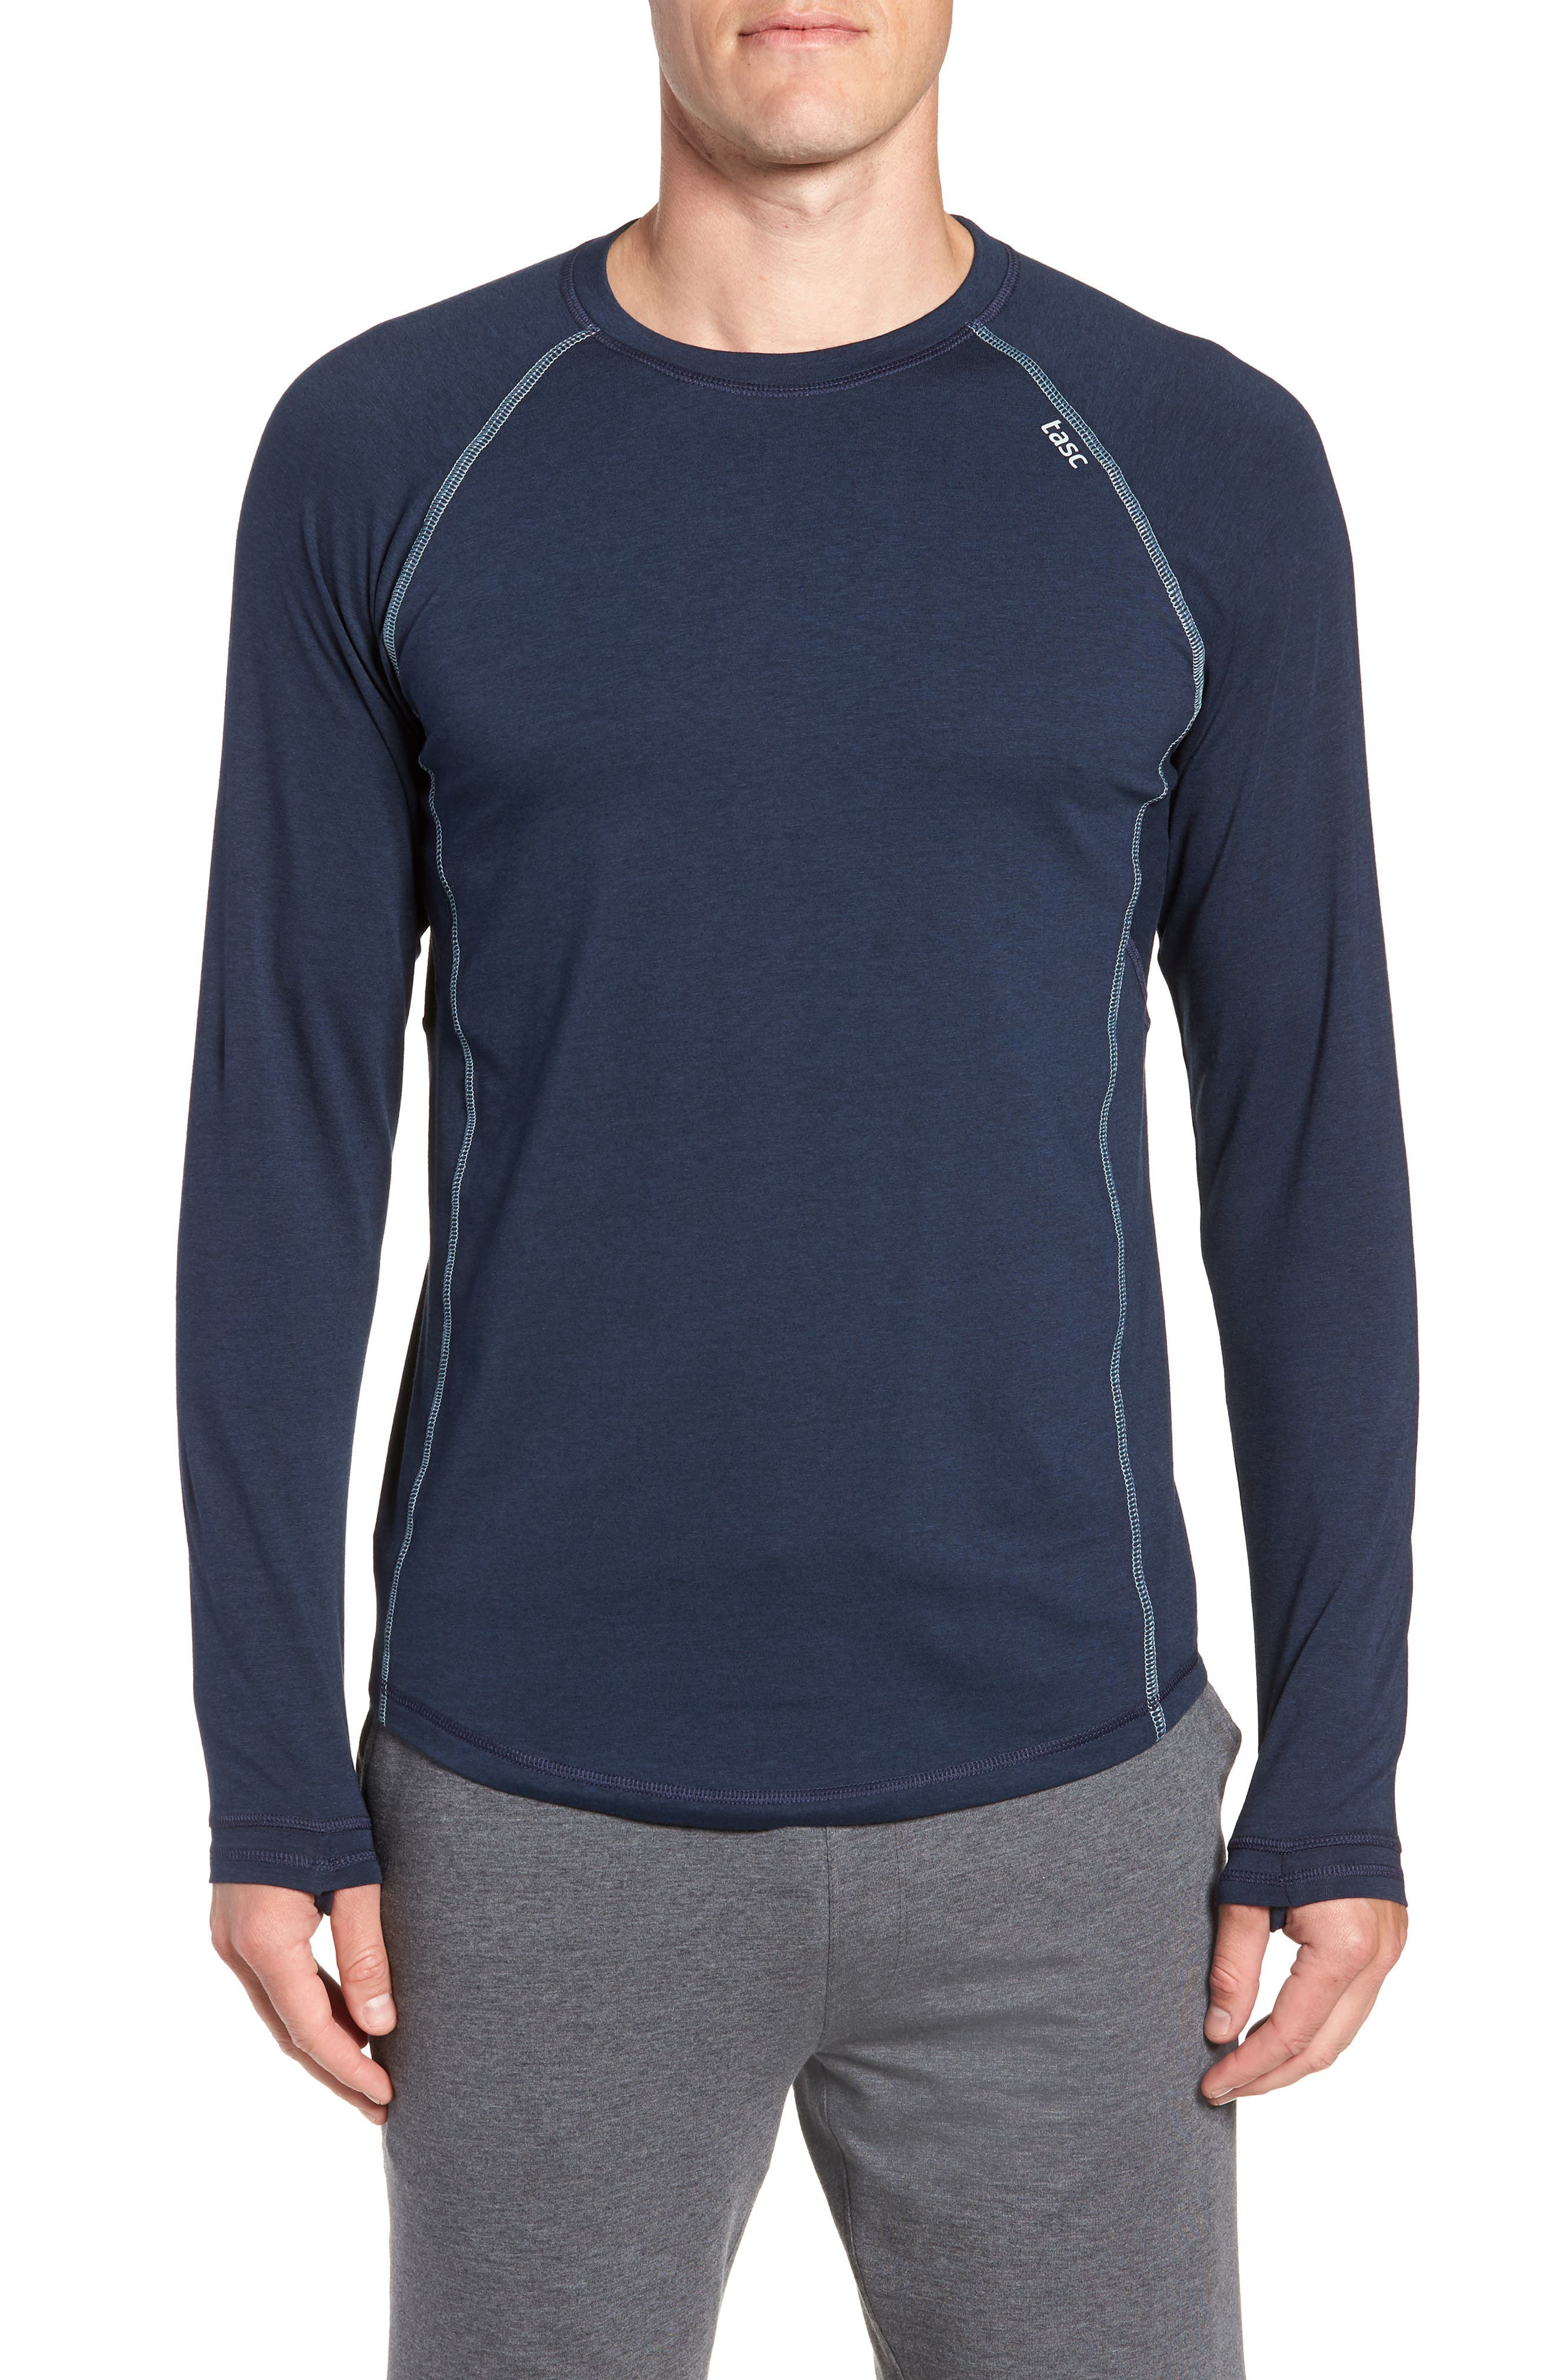 Charge II Long Sleeve T-Shirt,                         Main,                         color, CLASSIC NAVY/ TRANQUILITY SEA